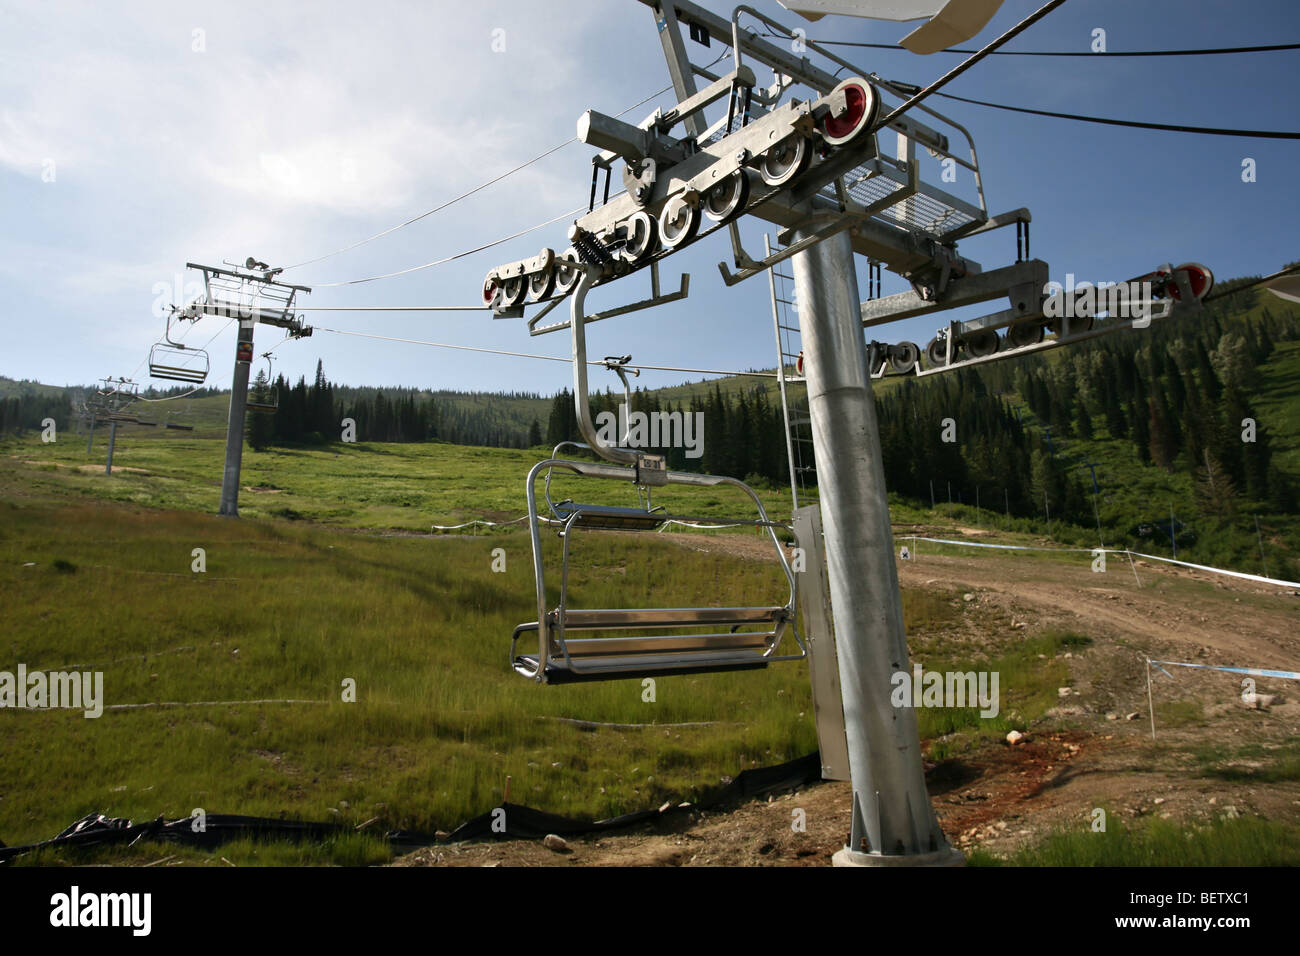 Chair lifts during the summer at Schweitzer Mountain Resort, Sandpoint, Idaho. - Stock Image